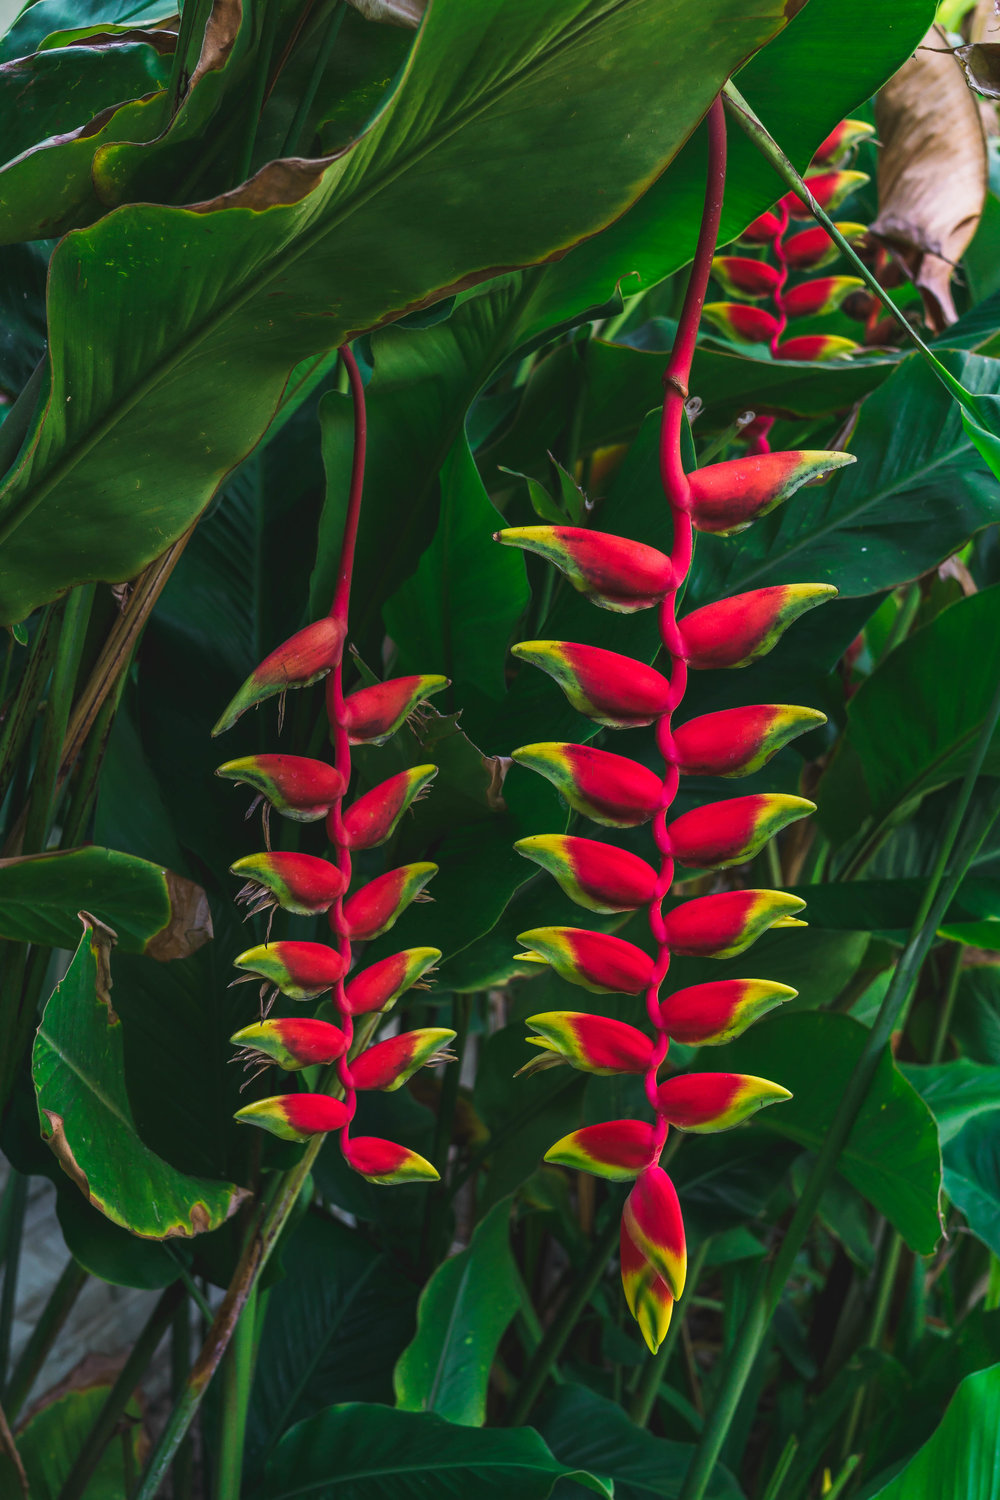 Heliconia flowers, Indonesia